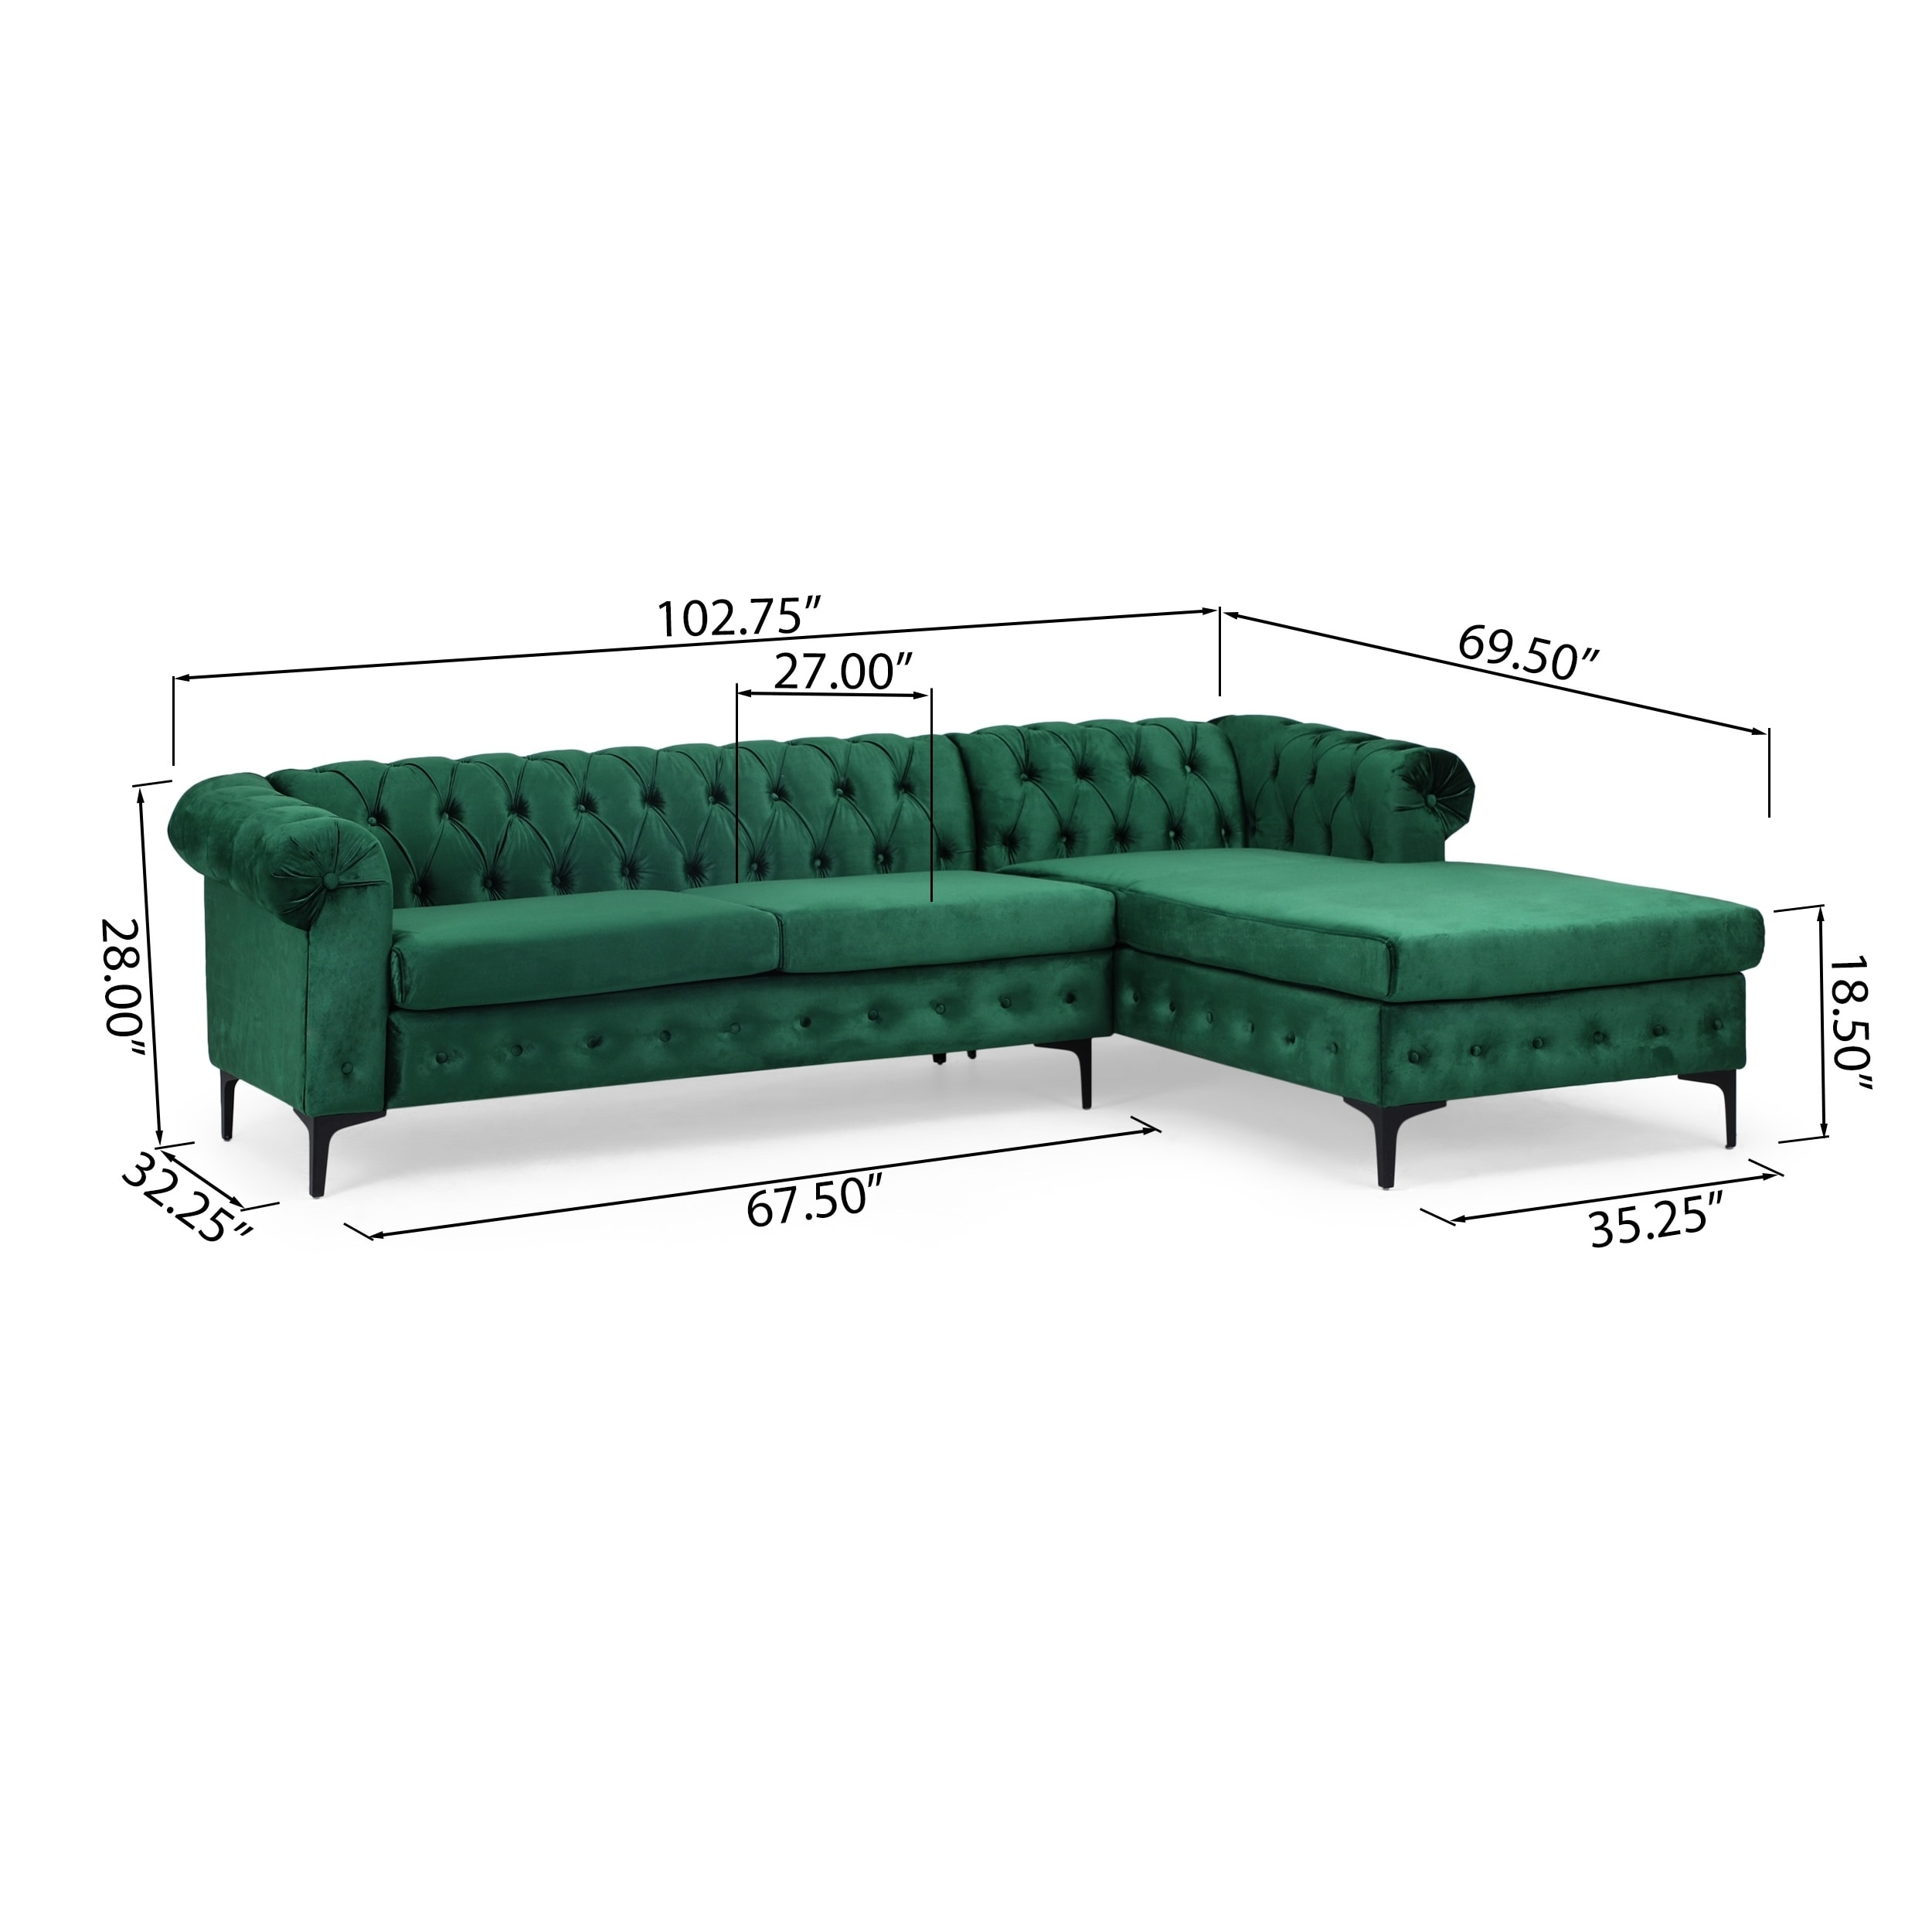 Shop Black Friday Deals On Burland Contemporary 3 Seater Sectional Sofa With Chaise Lounge By Christopher Knight Home Overstock 30682708